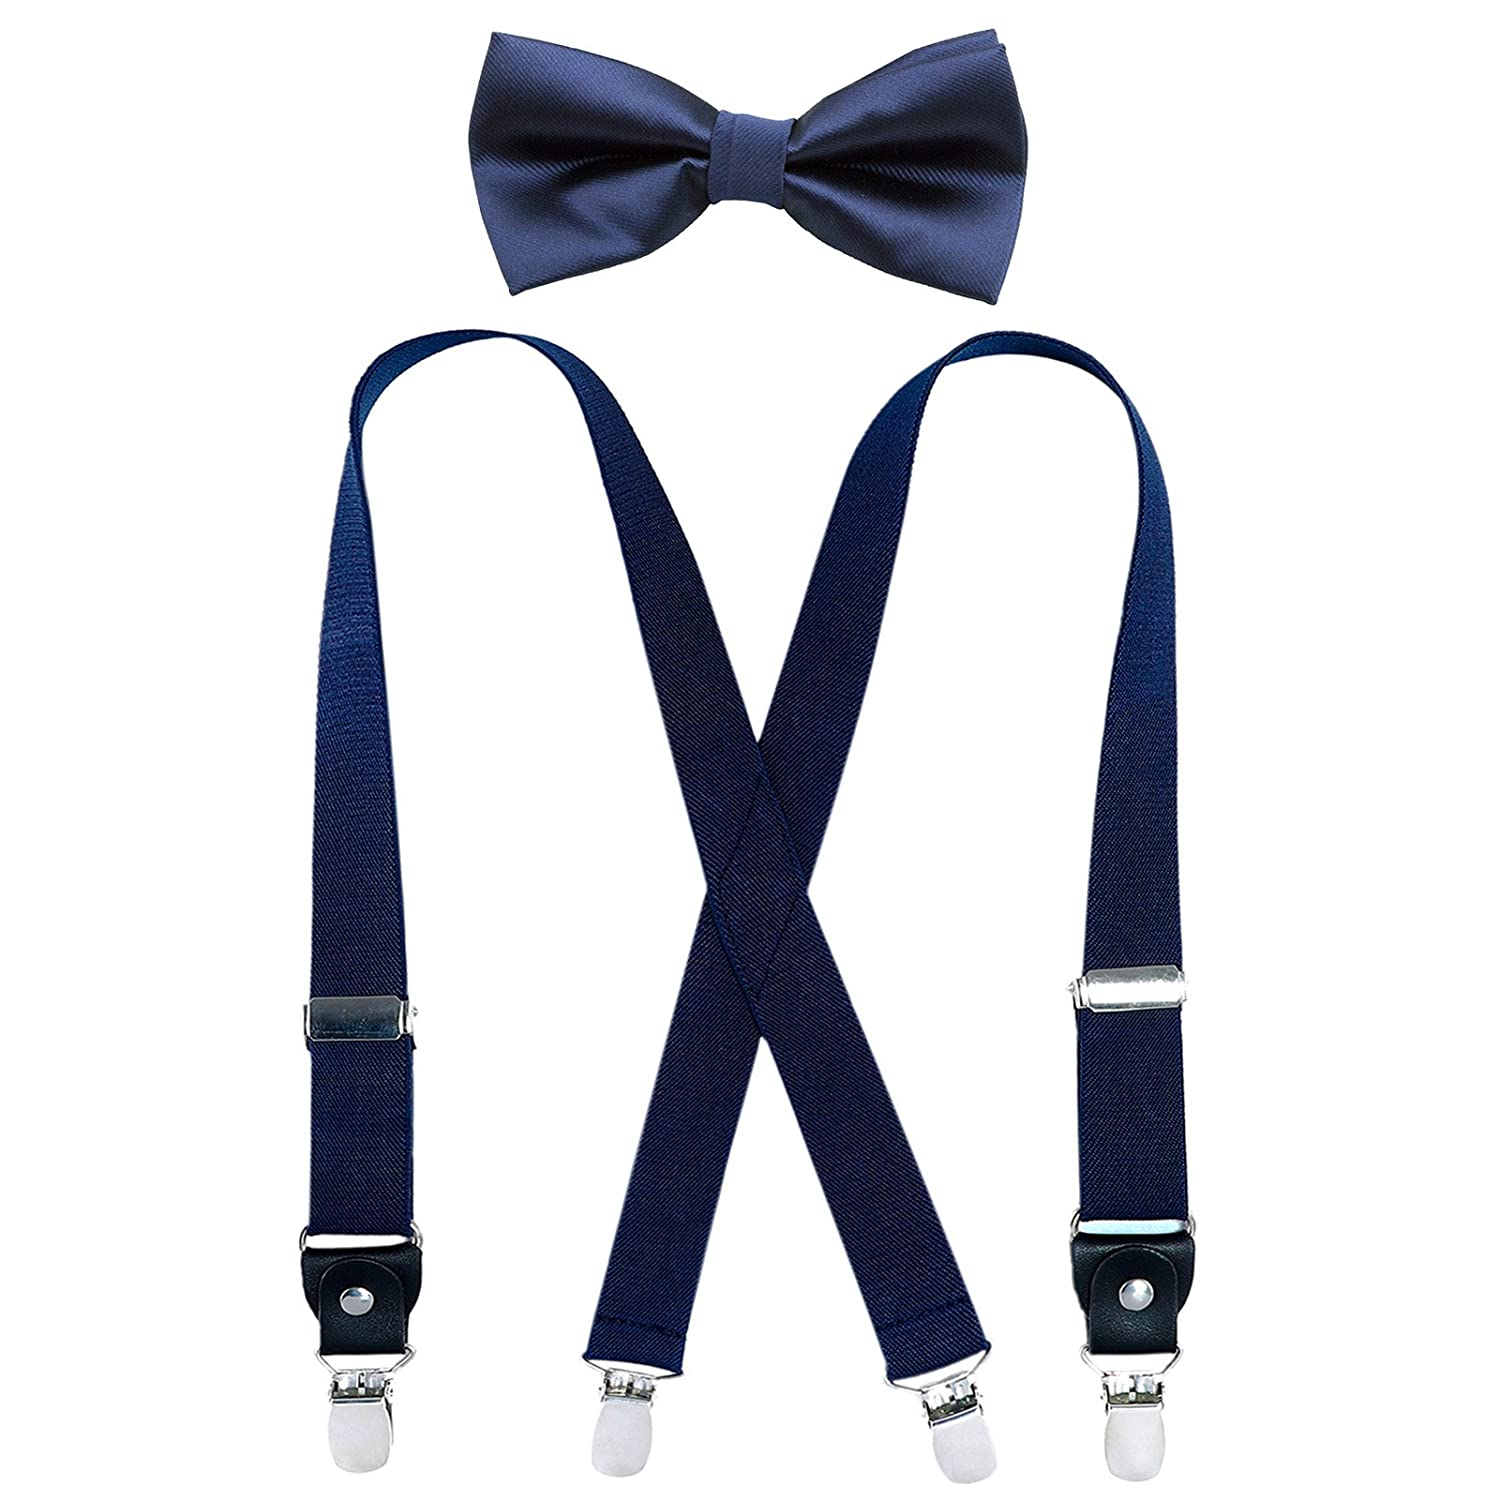 Kids Boy Suspenders Bowtie Set 9 Years to 5 Feet Tall , Navy blue Adjustable Suspender and Pre tied Bow Tie Set for Men 31Inches